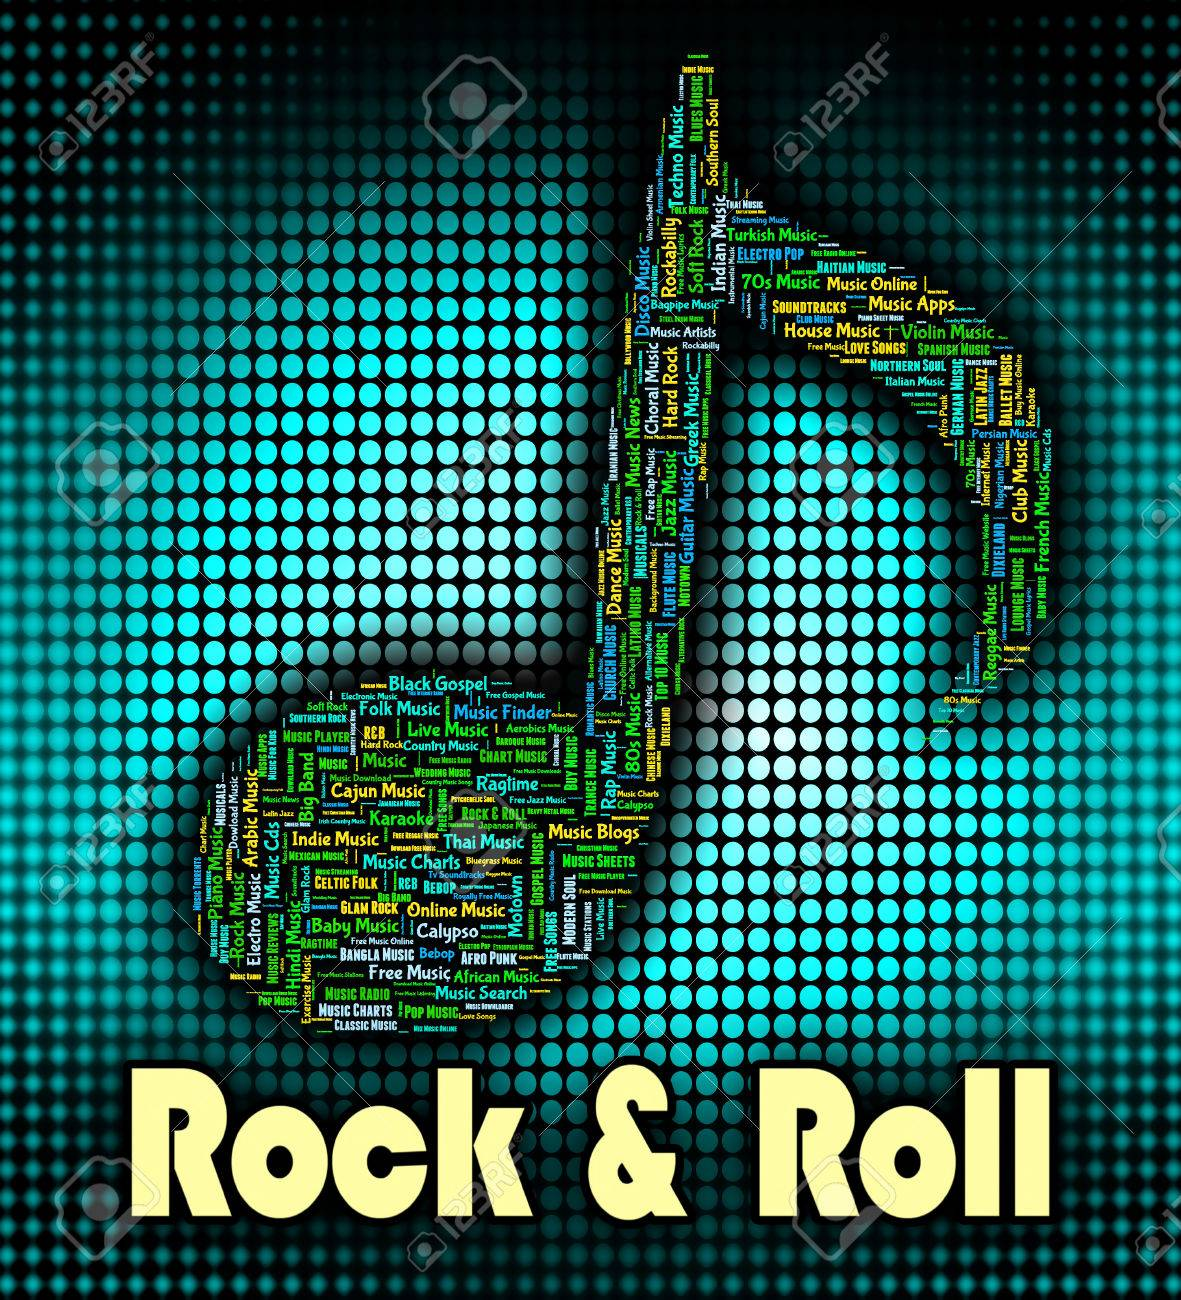 Rock And Roll Meaning Sound Track And Tune